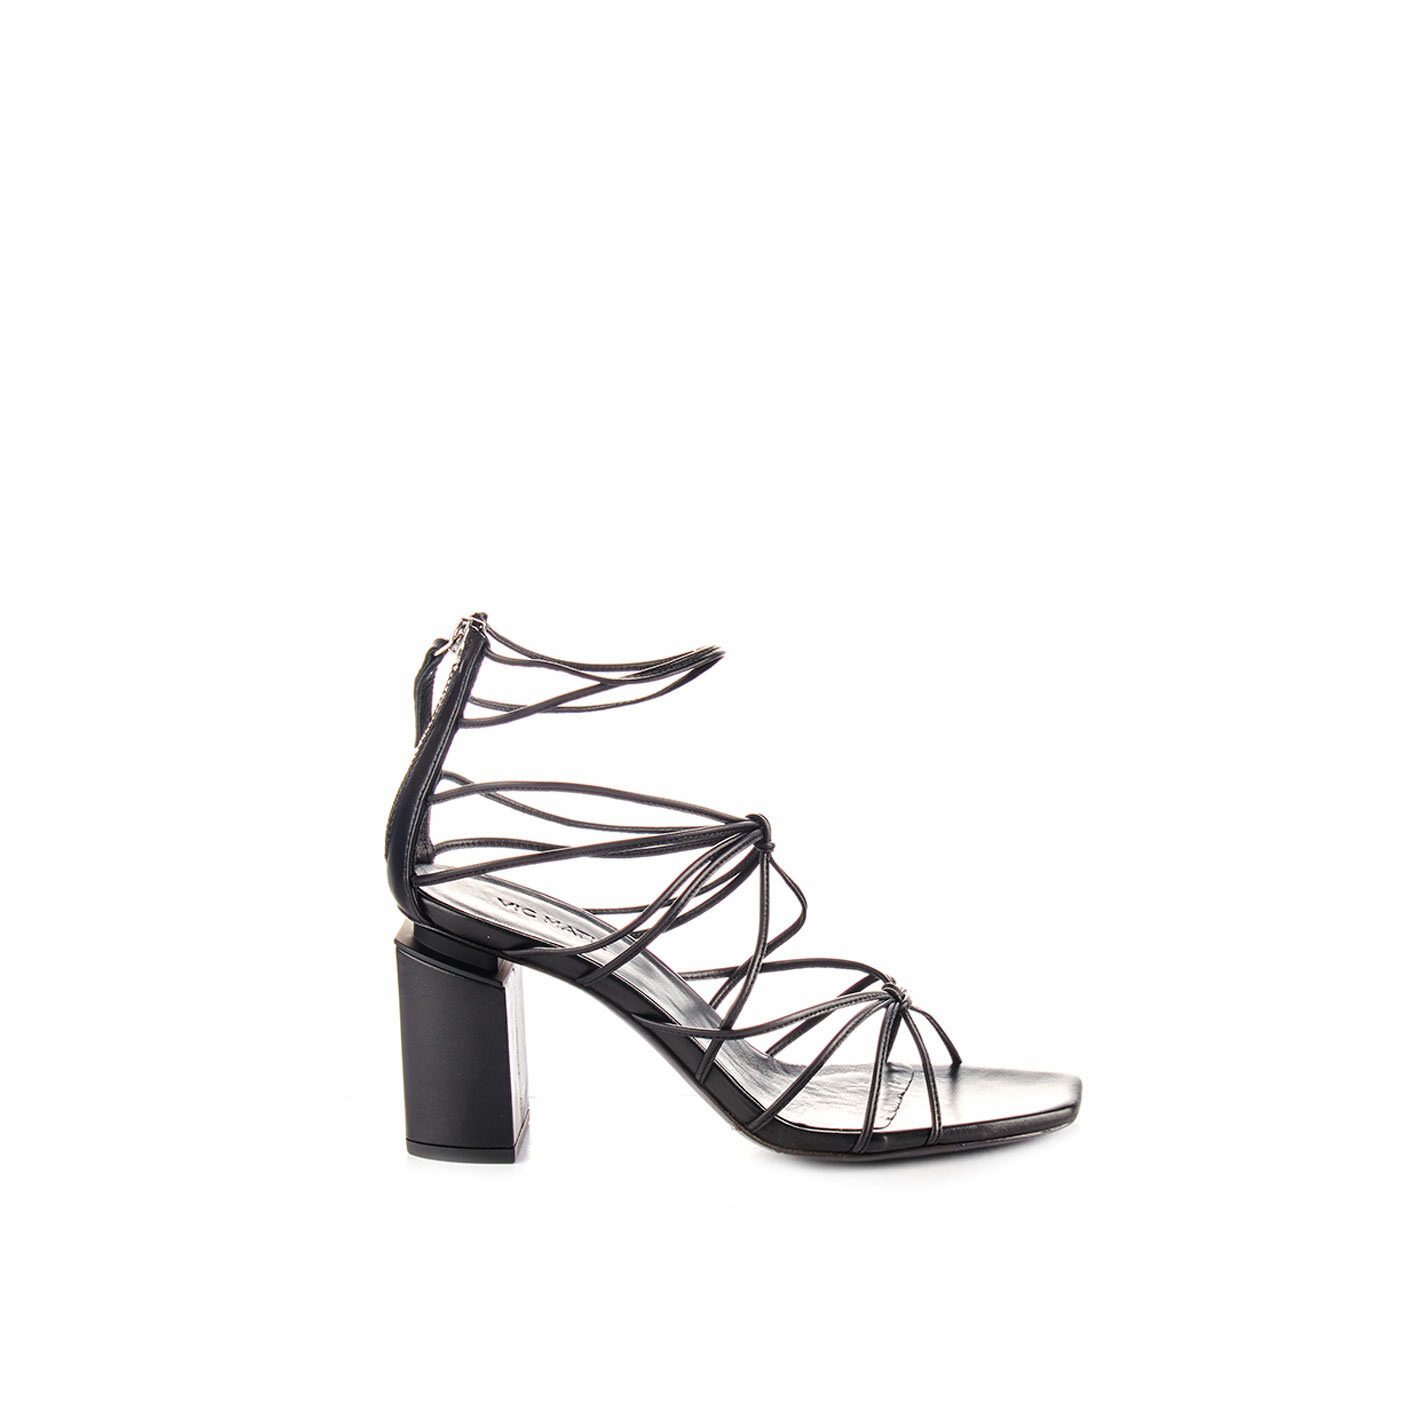 Sandals with black leather strings and suspended heel